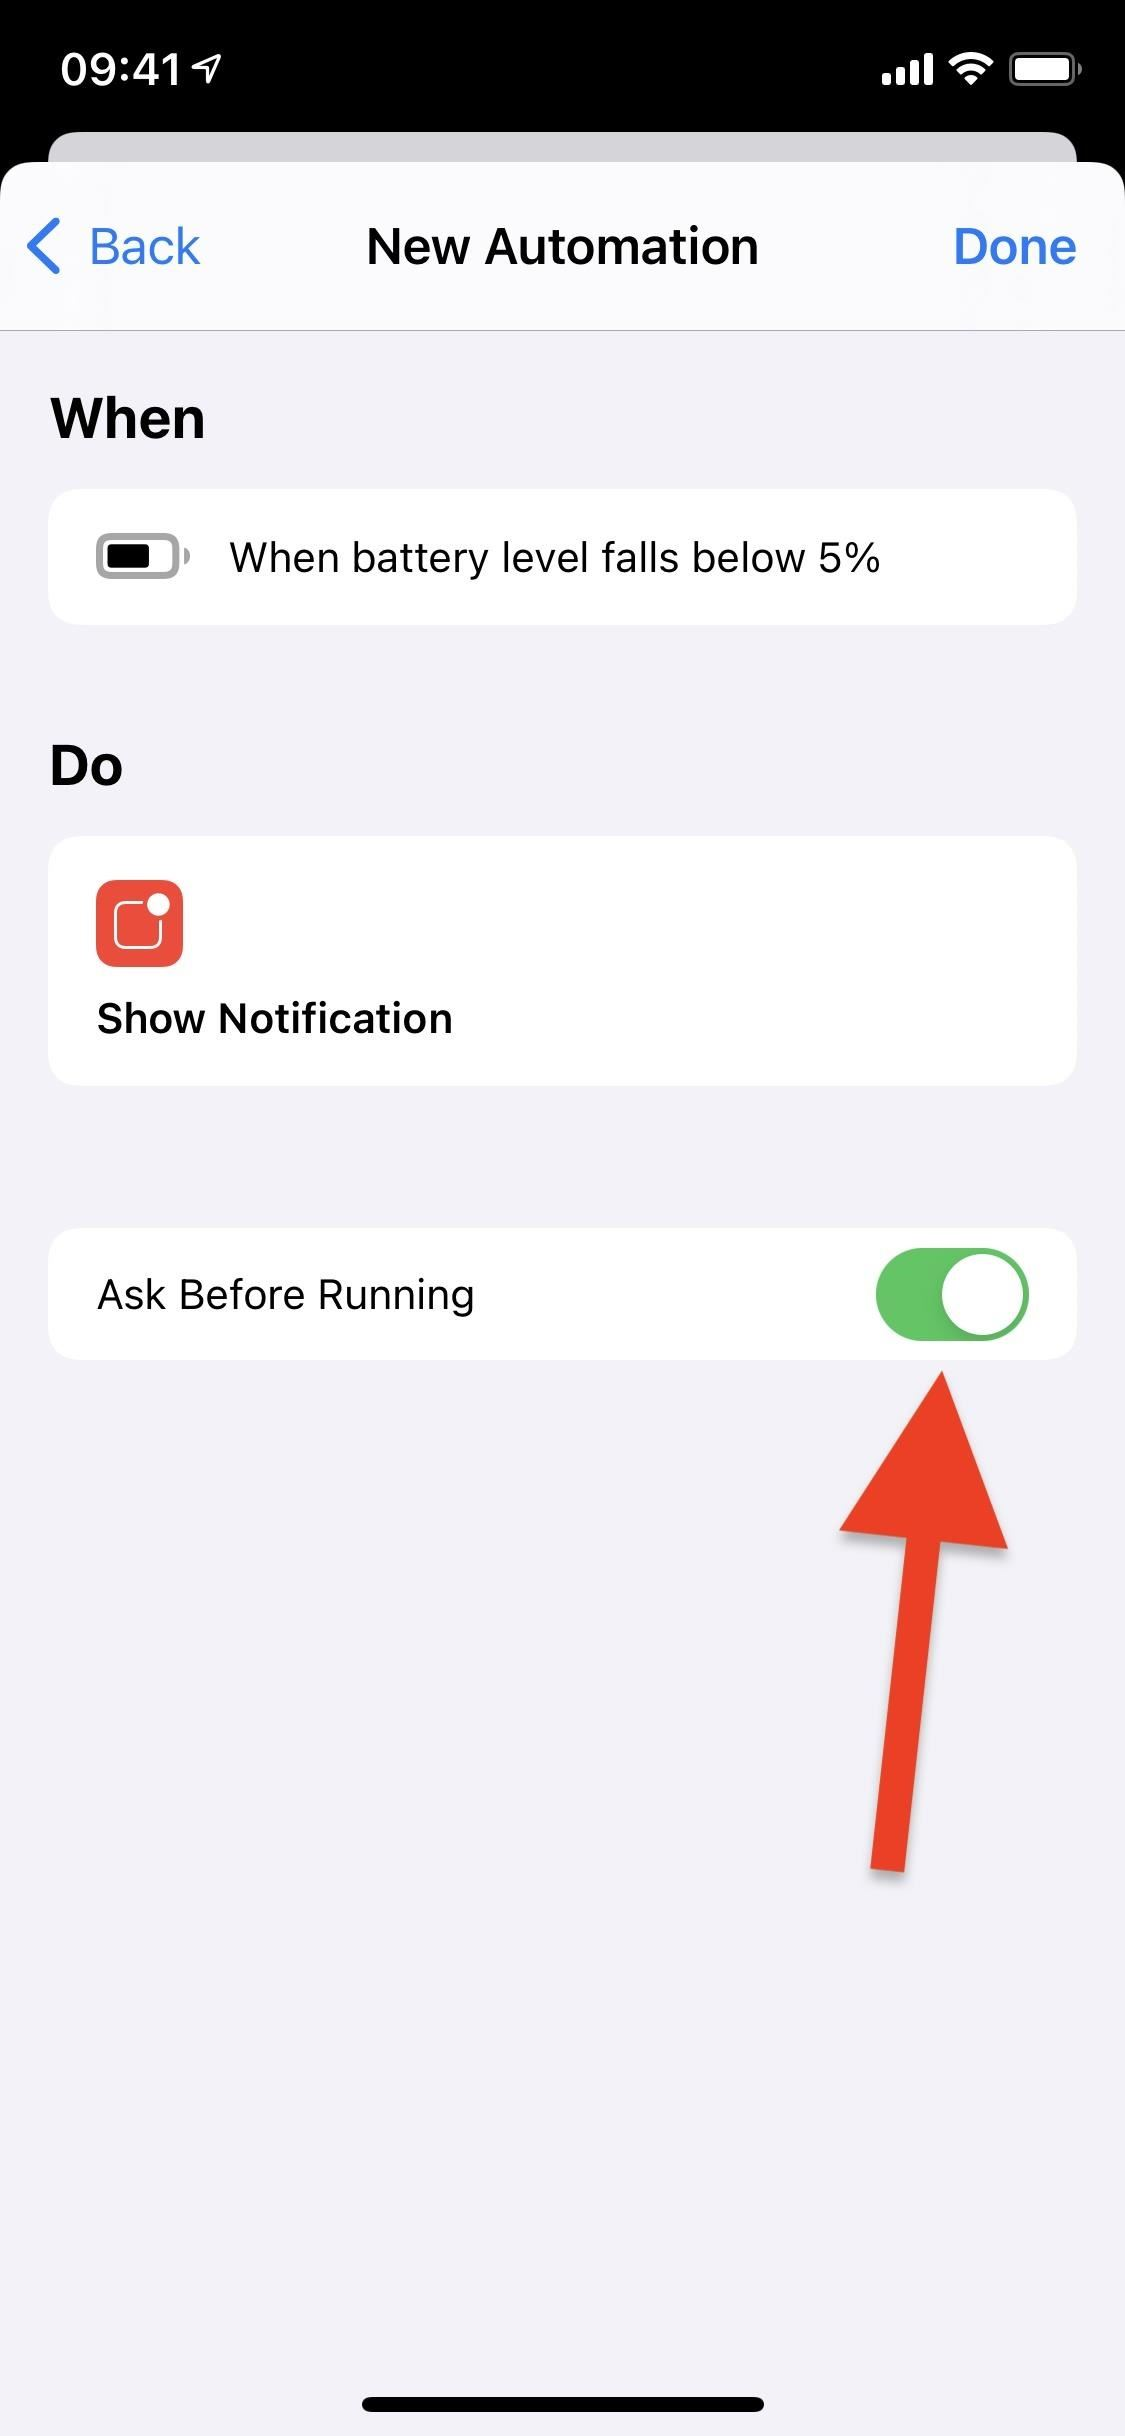 Make iOS Alert You When Your iPhone Only Has 5% Battery Life Remaining